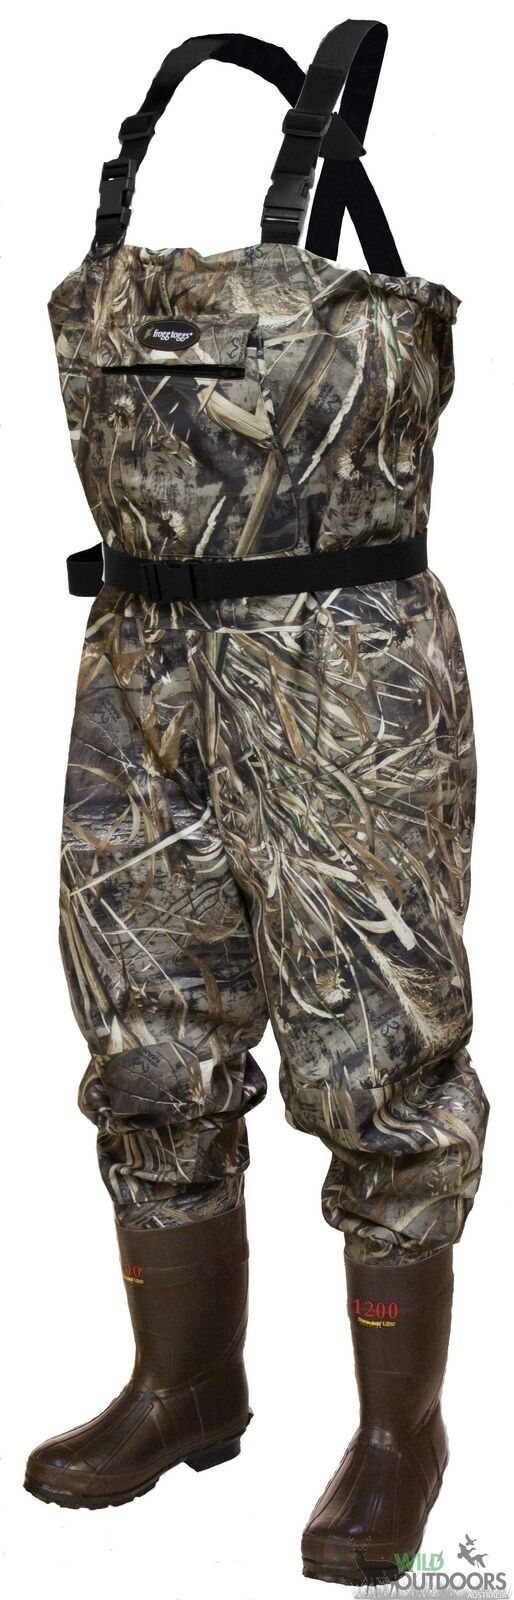 Frogg Toggs - HELLBENDER CAMO BREATHABLE WADERS